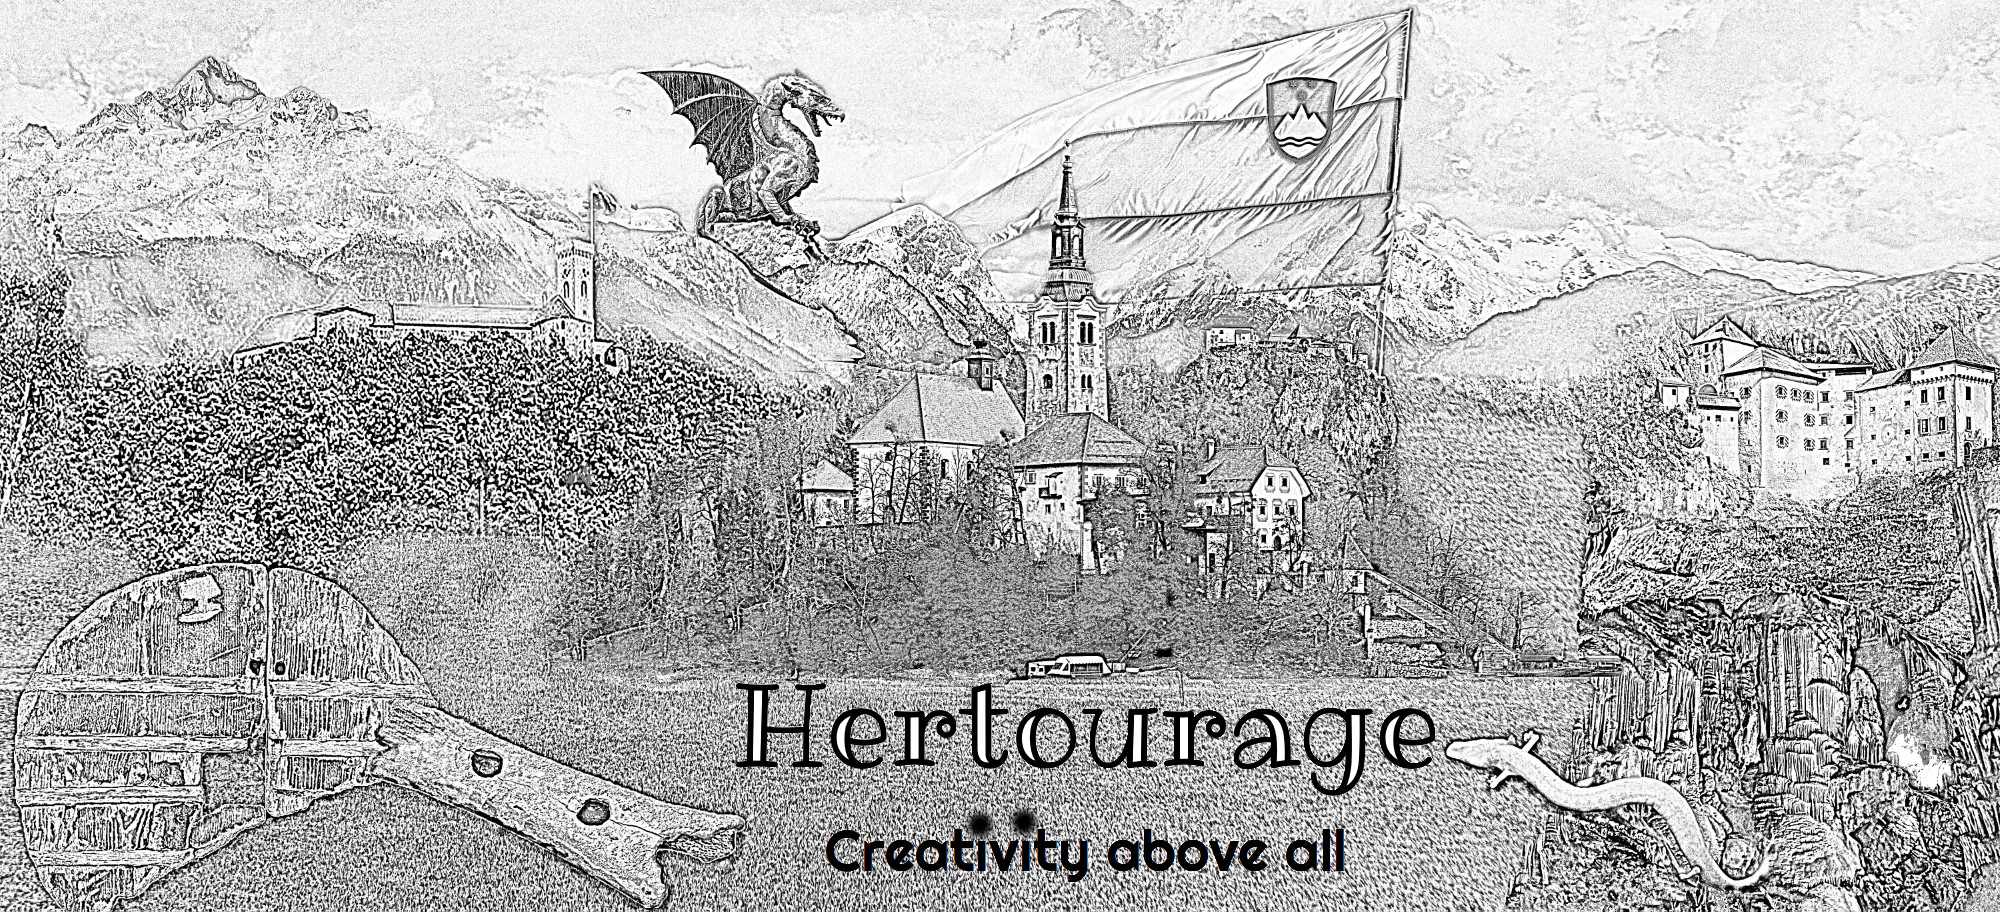 Hertourage